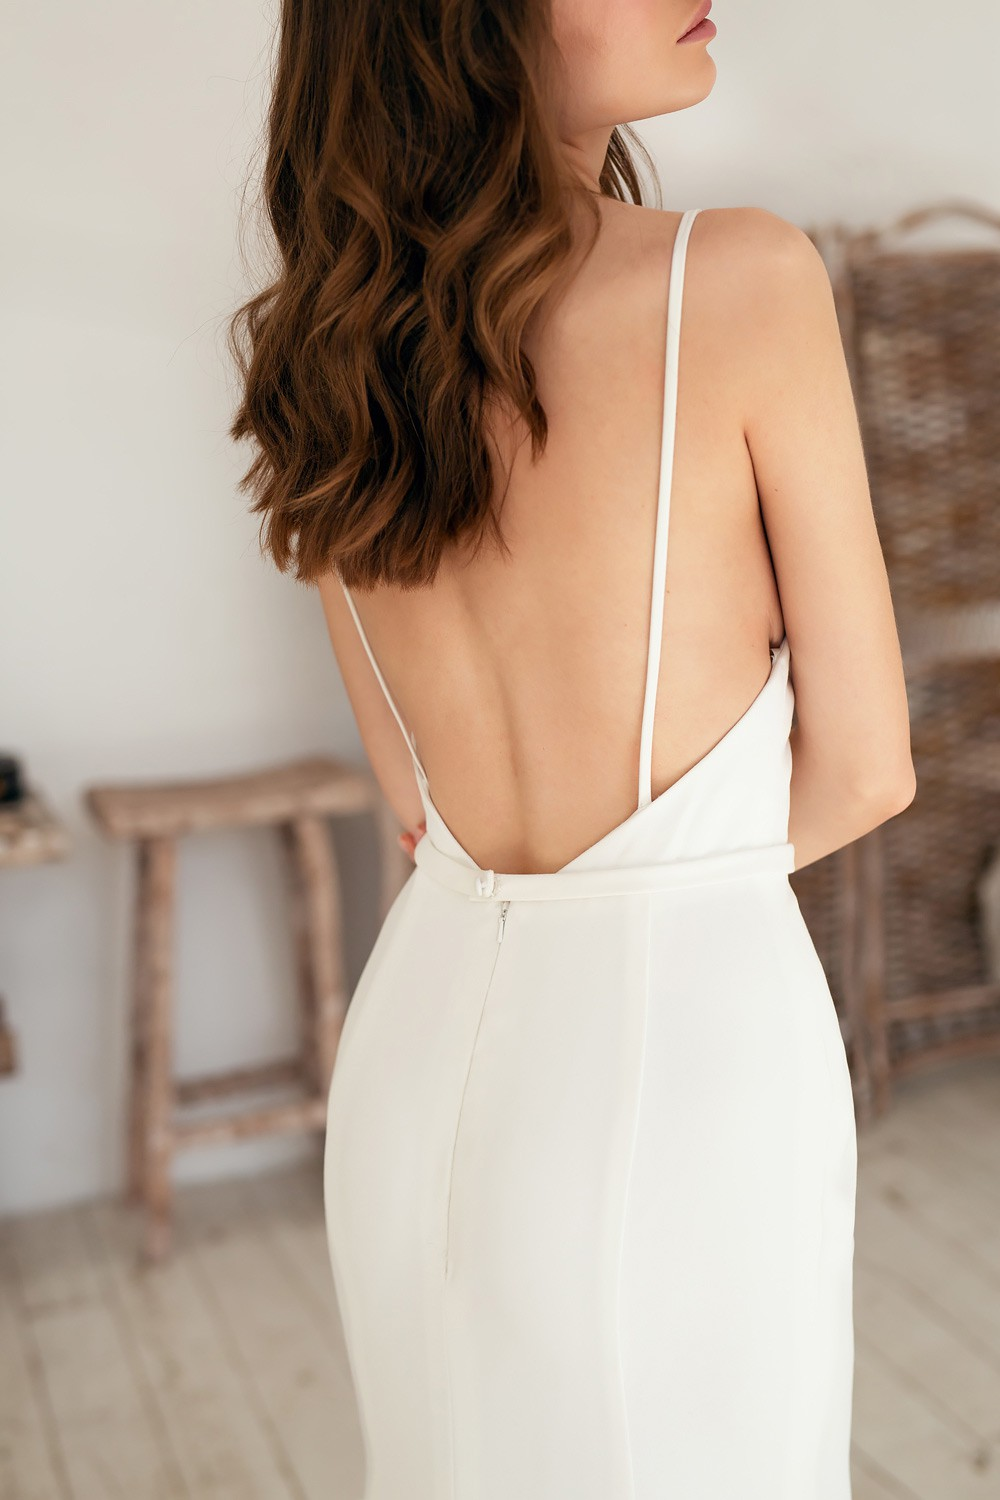 spell love lace slip dress > Clearance shop